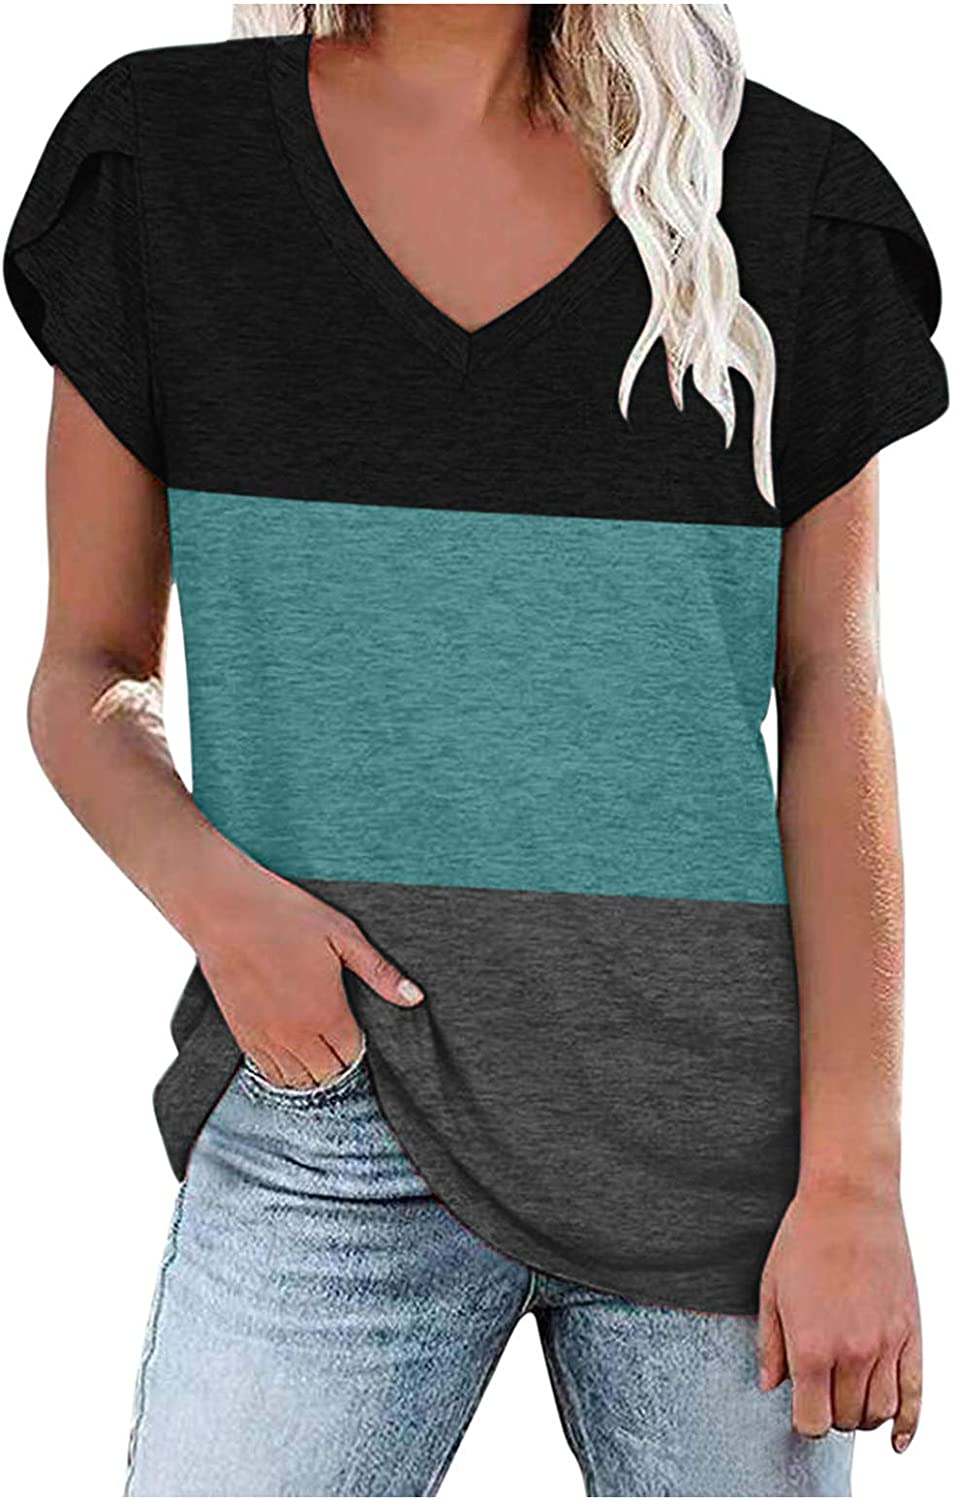 AODONG Womens Summer Tops with Sleeves Casual Blouse Color Block V-Neck T-Shirt Short Sleeves Tunics Womens Tops Green